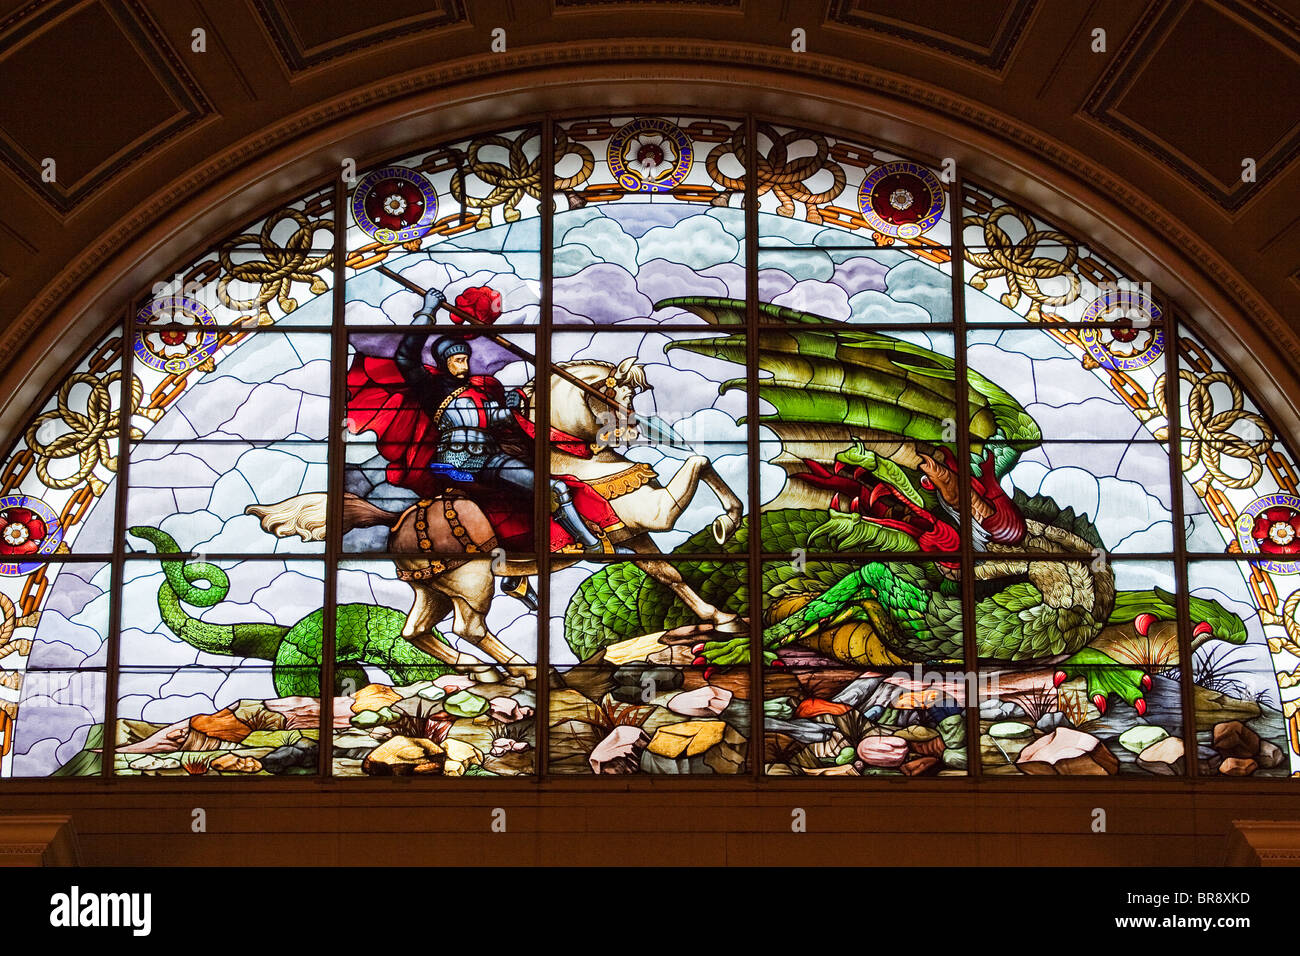 Stained glass windows showing St George and the Dragon, in ...